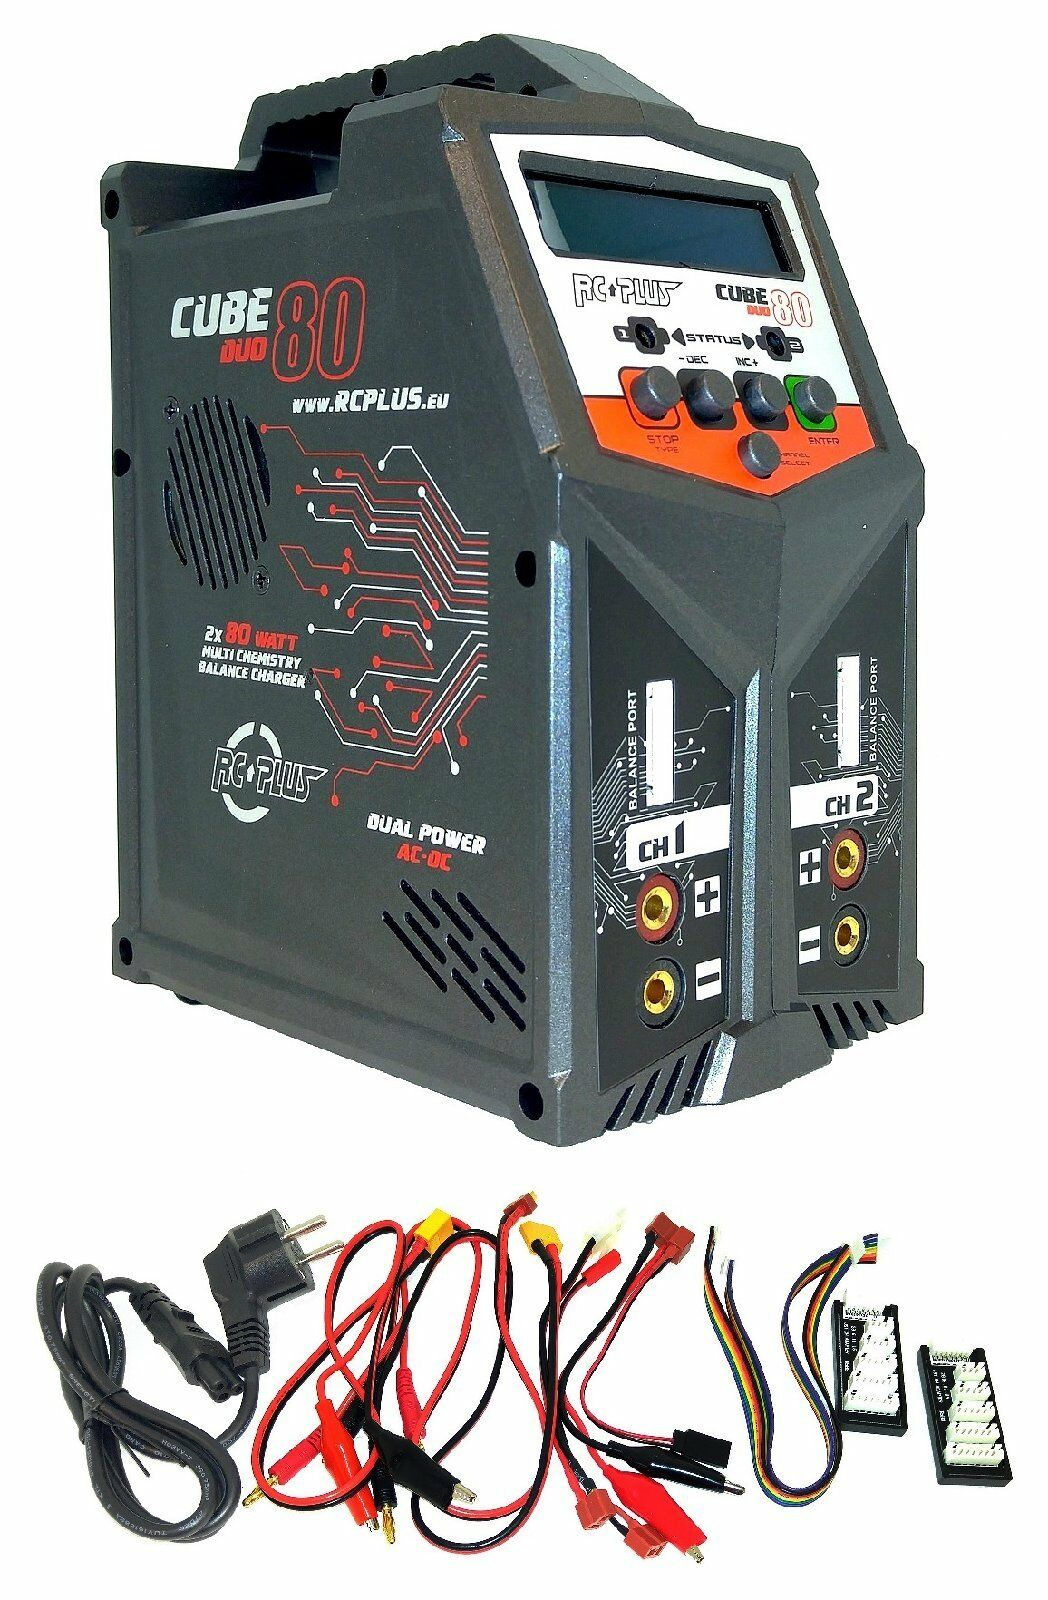 RC PLUS rc-cha-211 Cubo 80 Duo 2x 80watt   máx. 7a